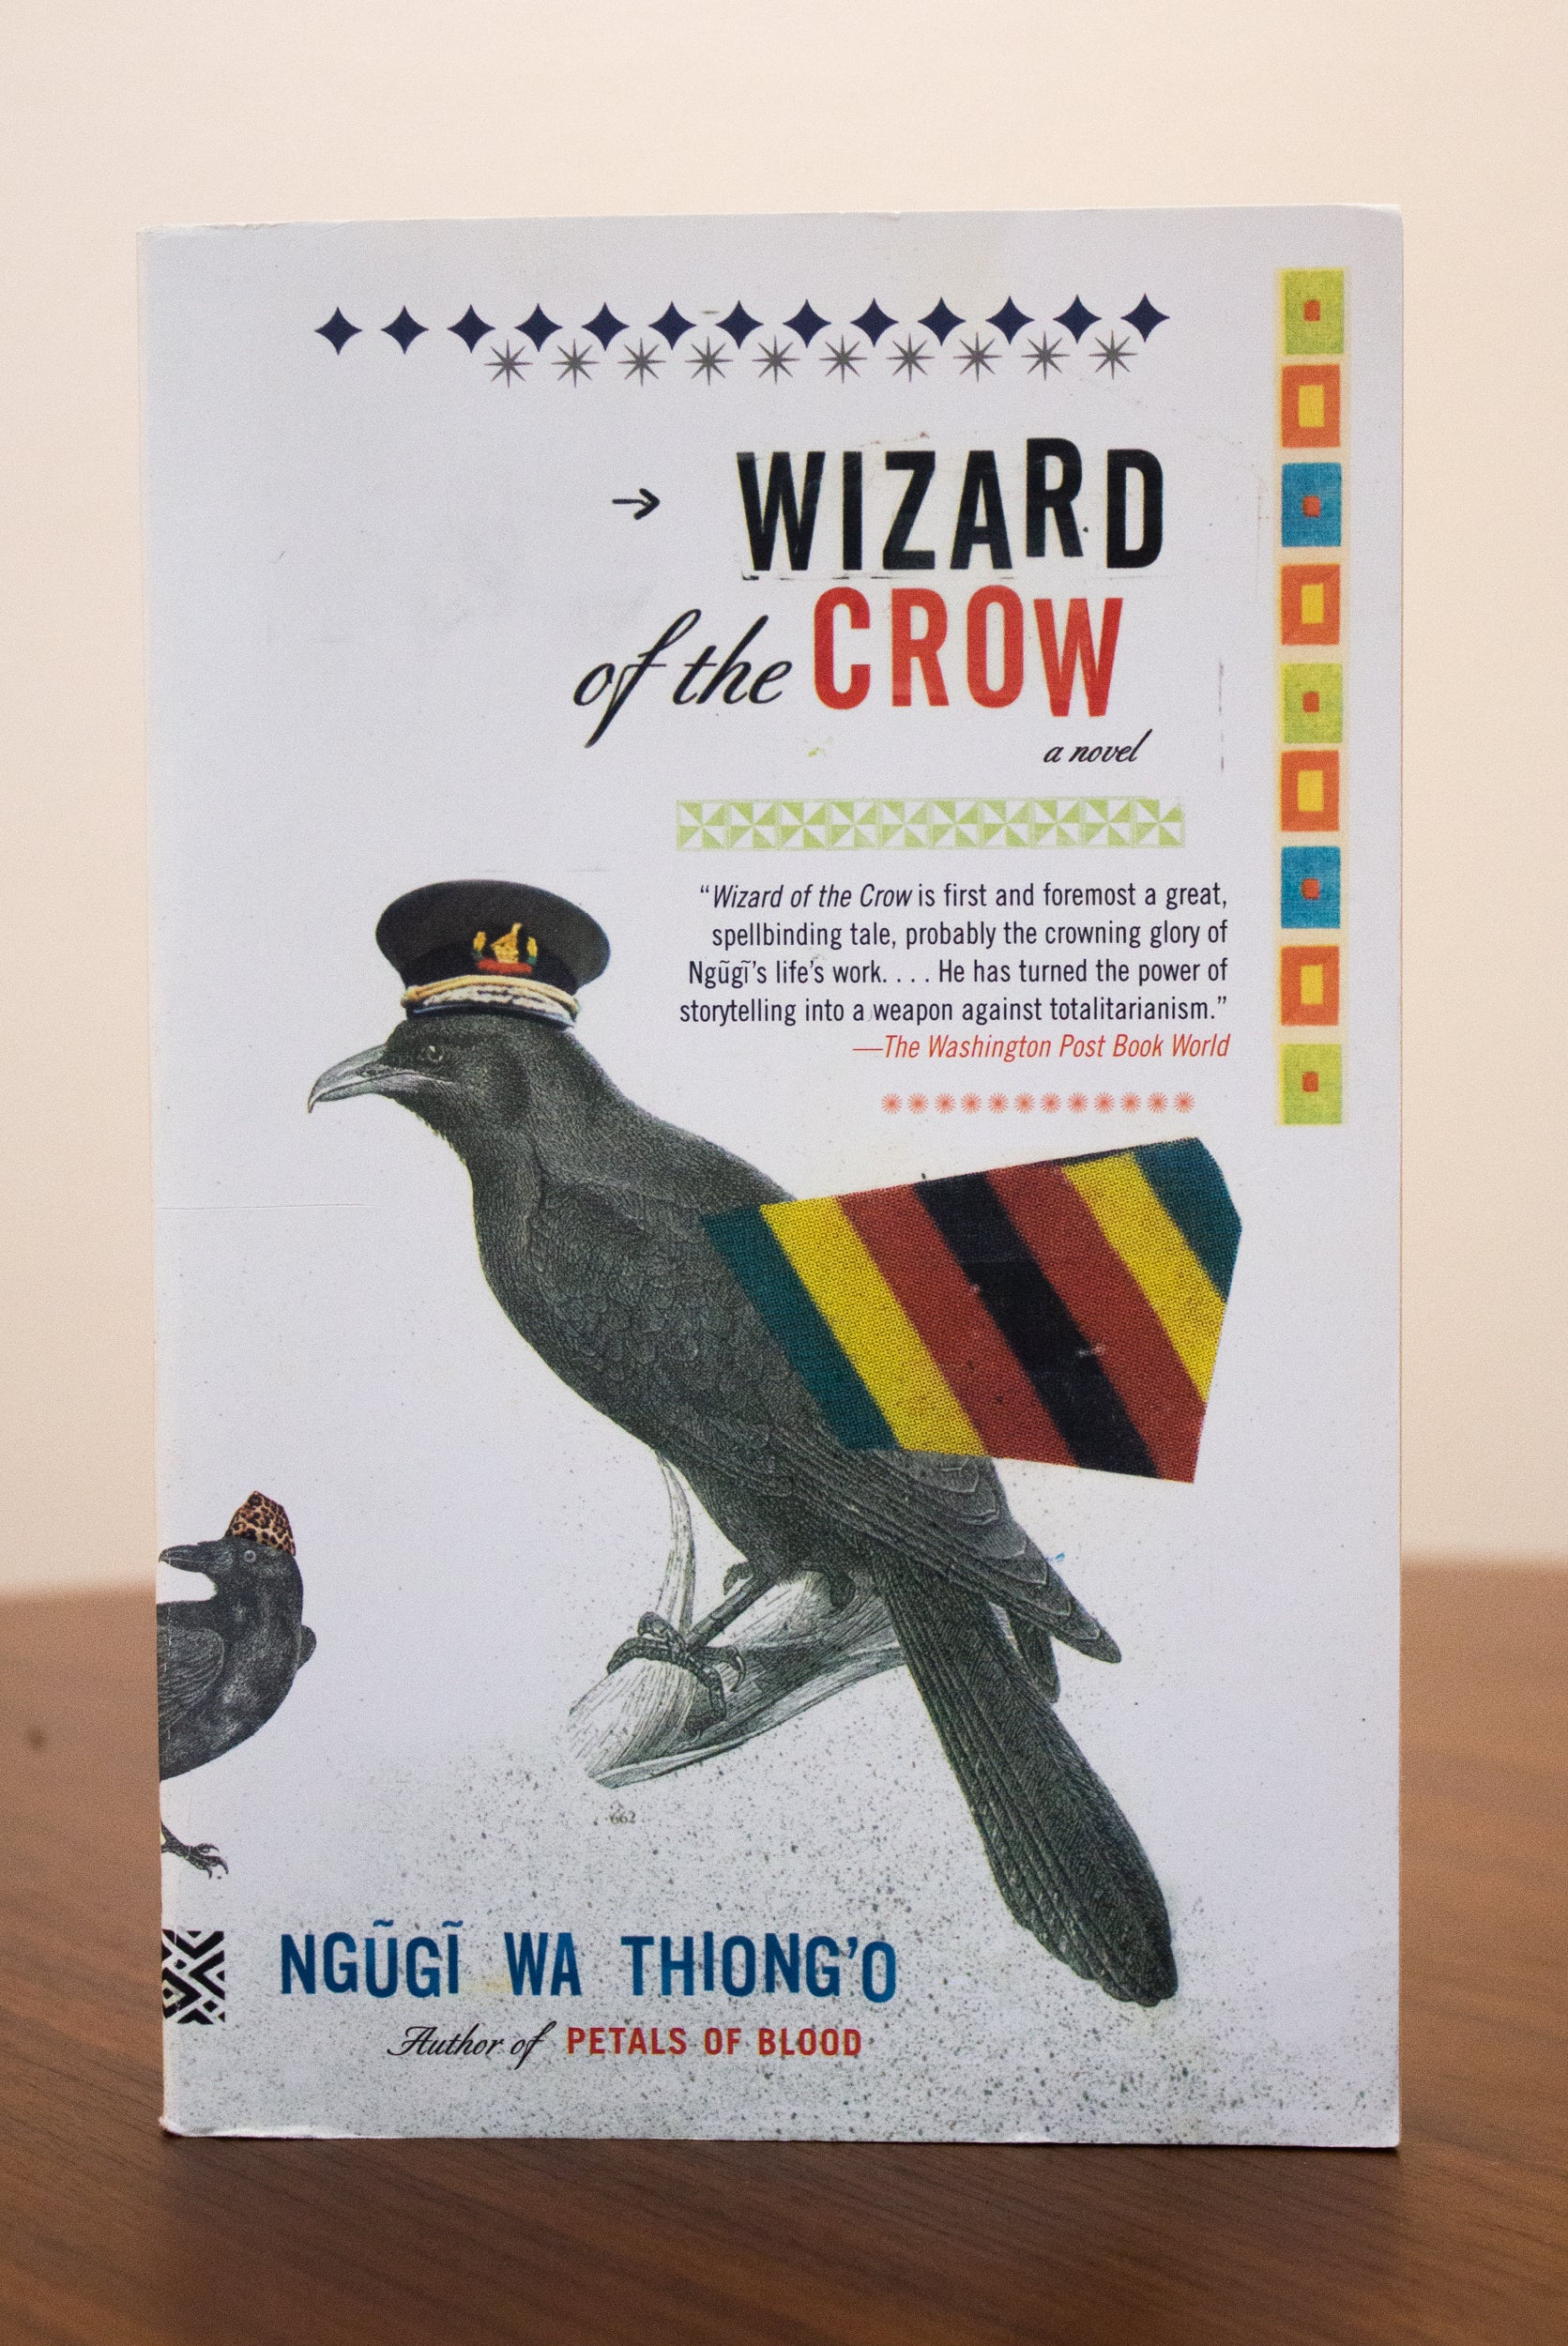 Wizard of the Crow by Ngugi wa Thiongo